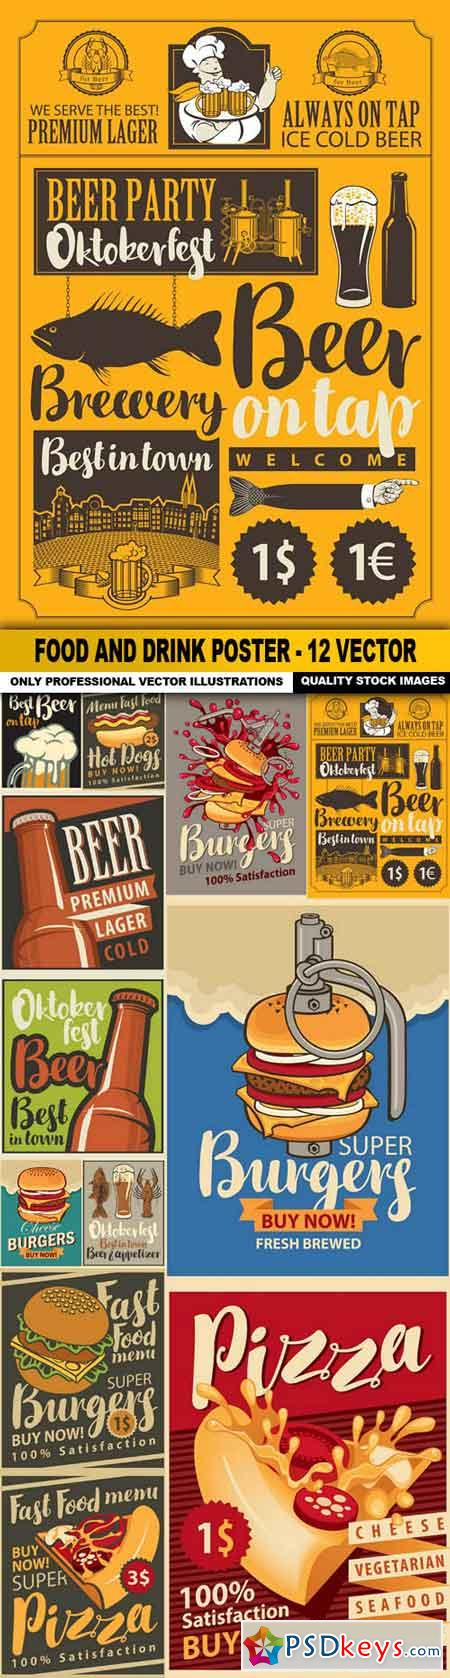 Food And Drink Poster - 12 Vector